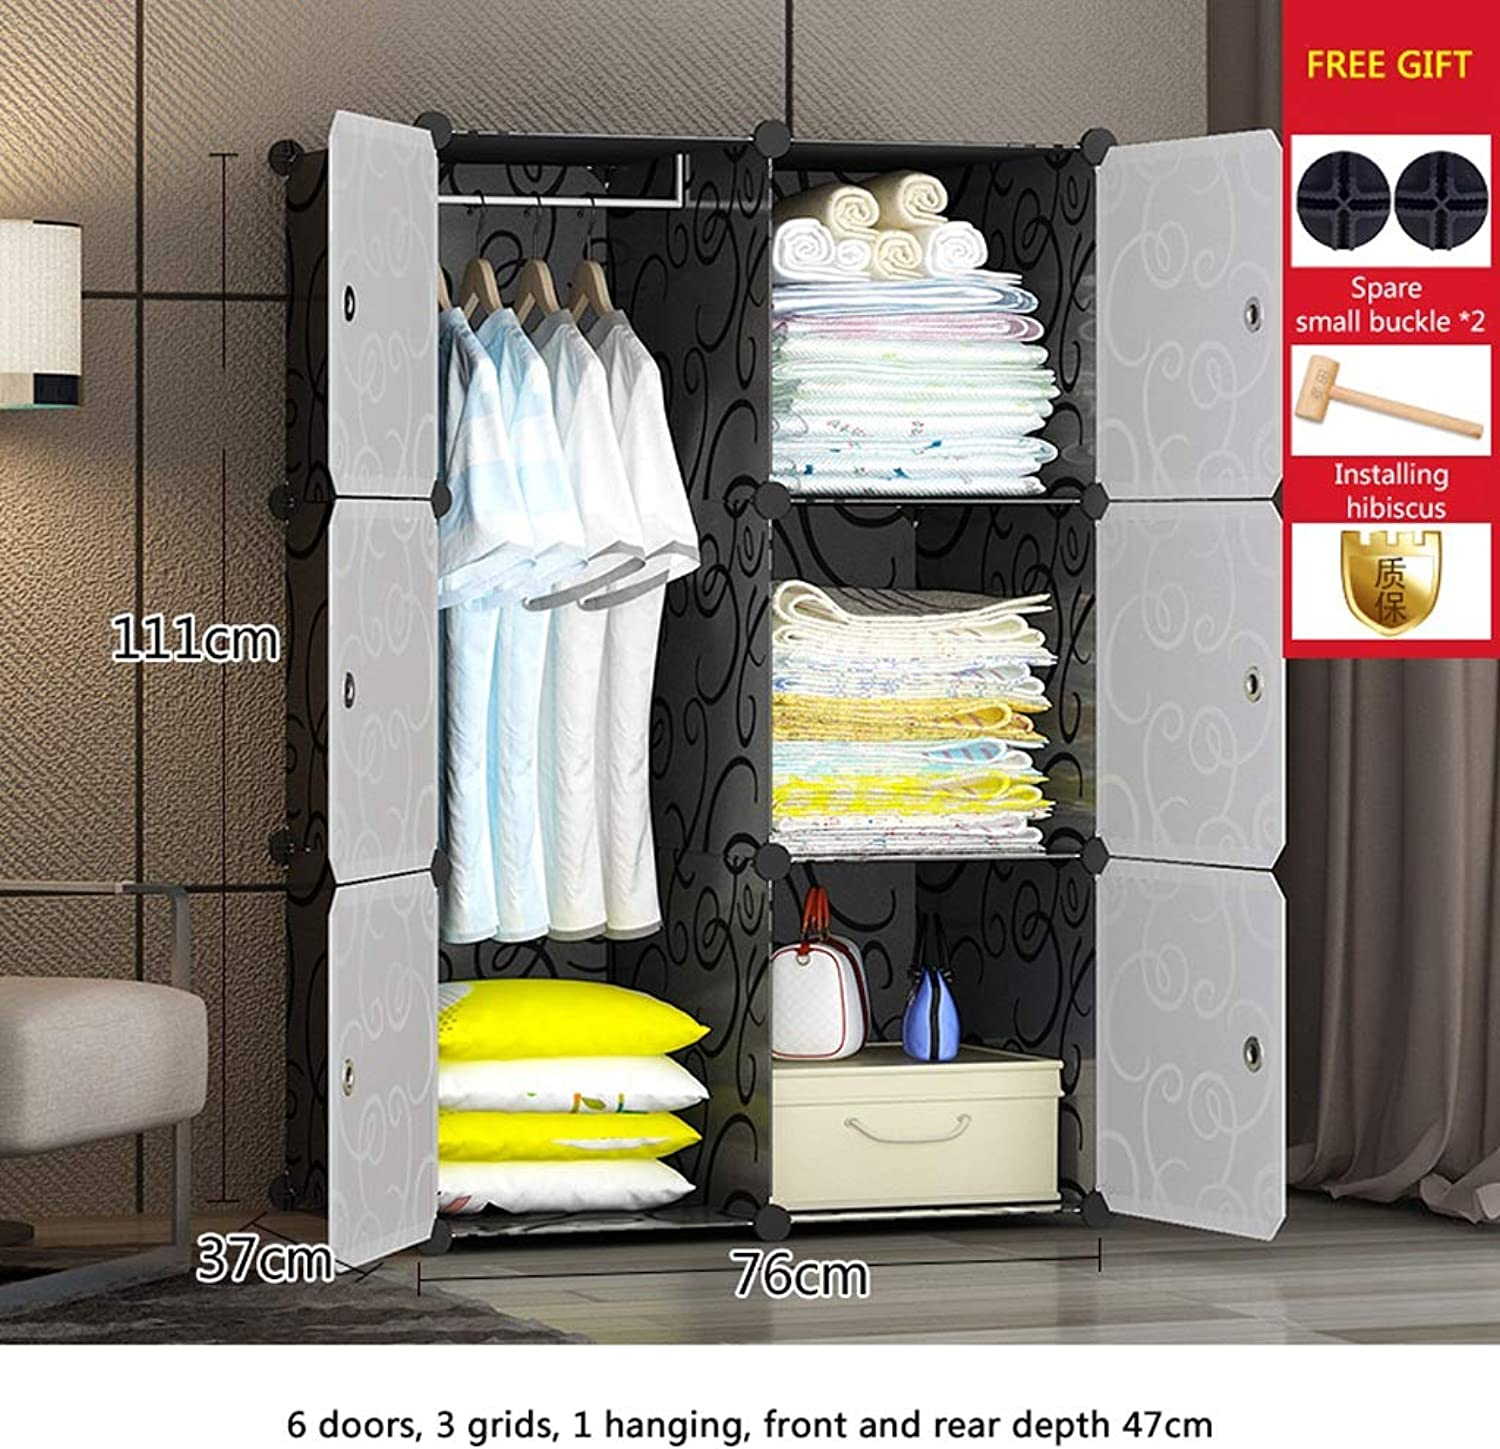 Clothes Closet Wardrobe Portable Wardrobe Closet Modular Storage Organizer Space Saving Armoire Deeper Cube with Hanging Rod 6 Doors (Size   A)